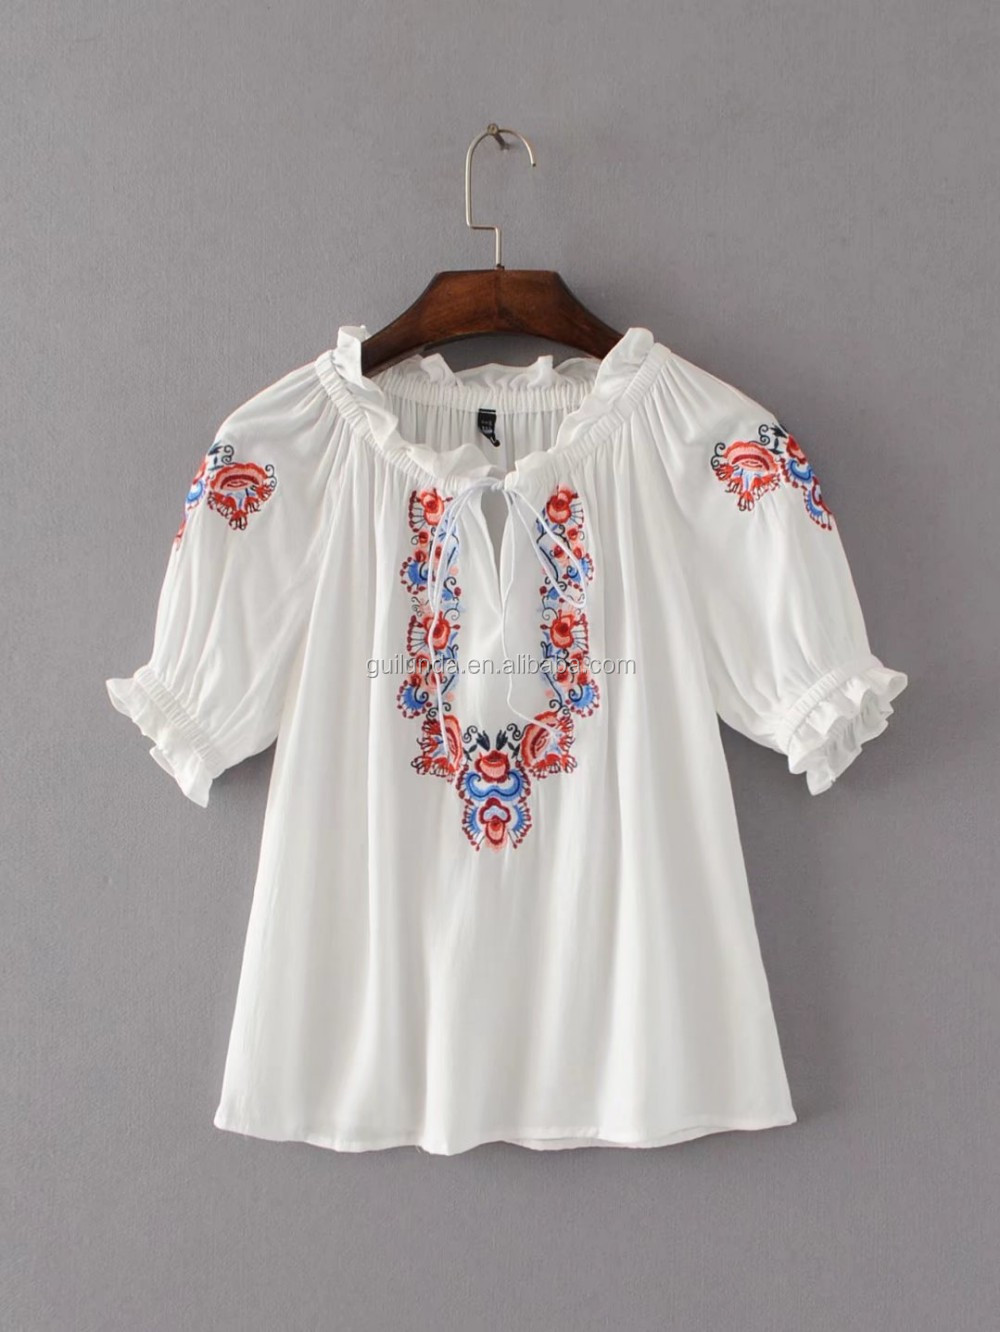 China supplier summer woman clothing perfect rayon blouse